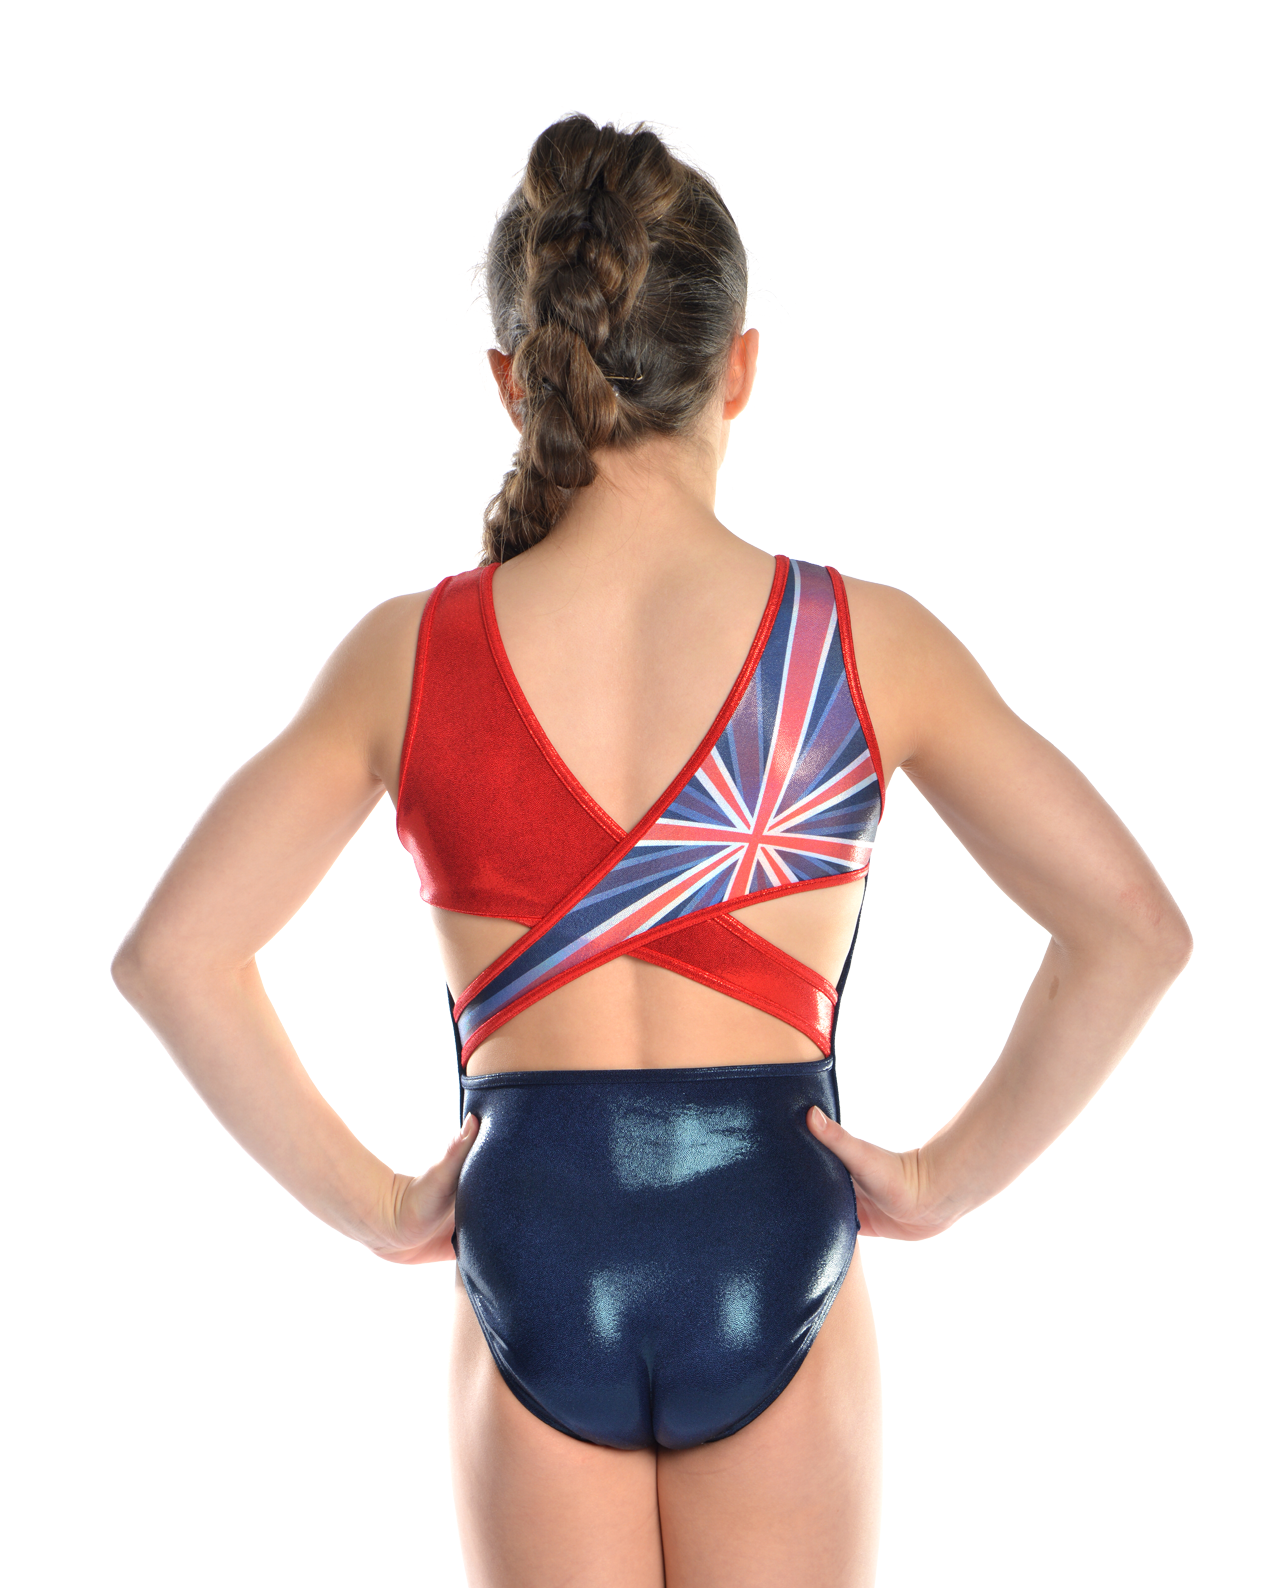 navy and red gymnastics leotard with union jack detail